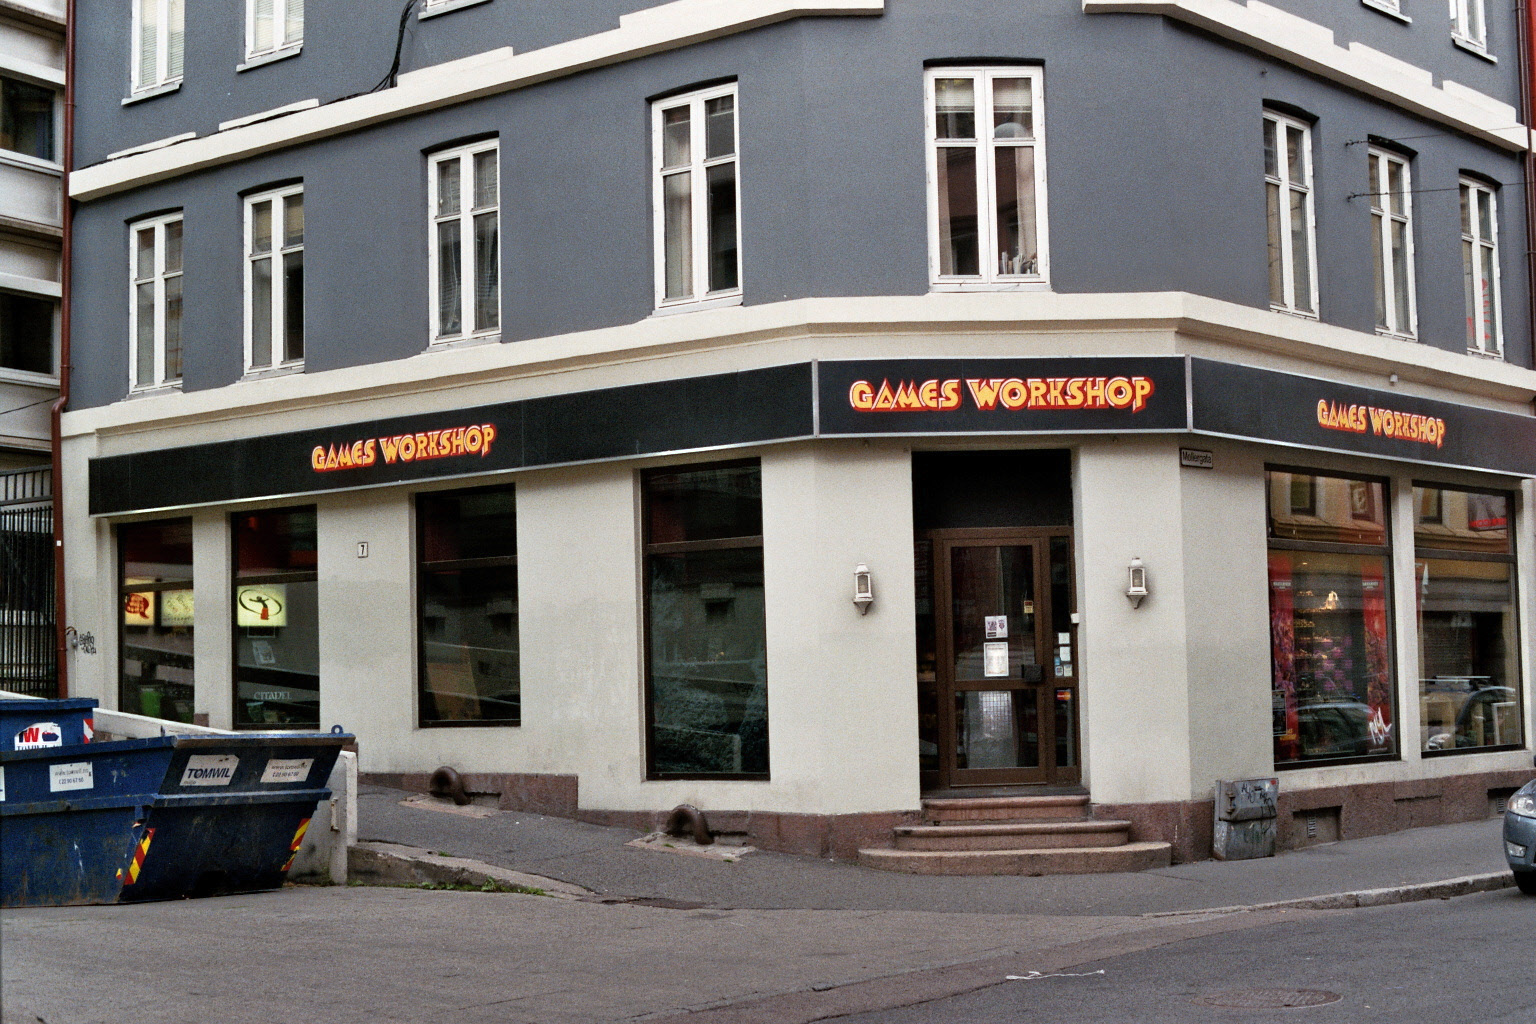 File:Games Workshop Oslo.jpg - Wikimedia Commons